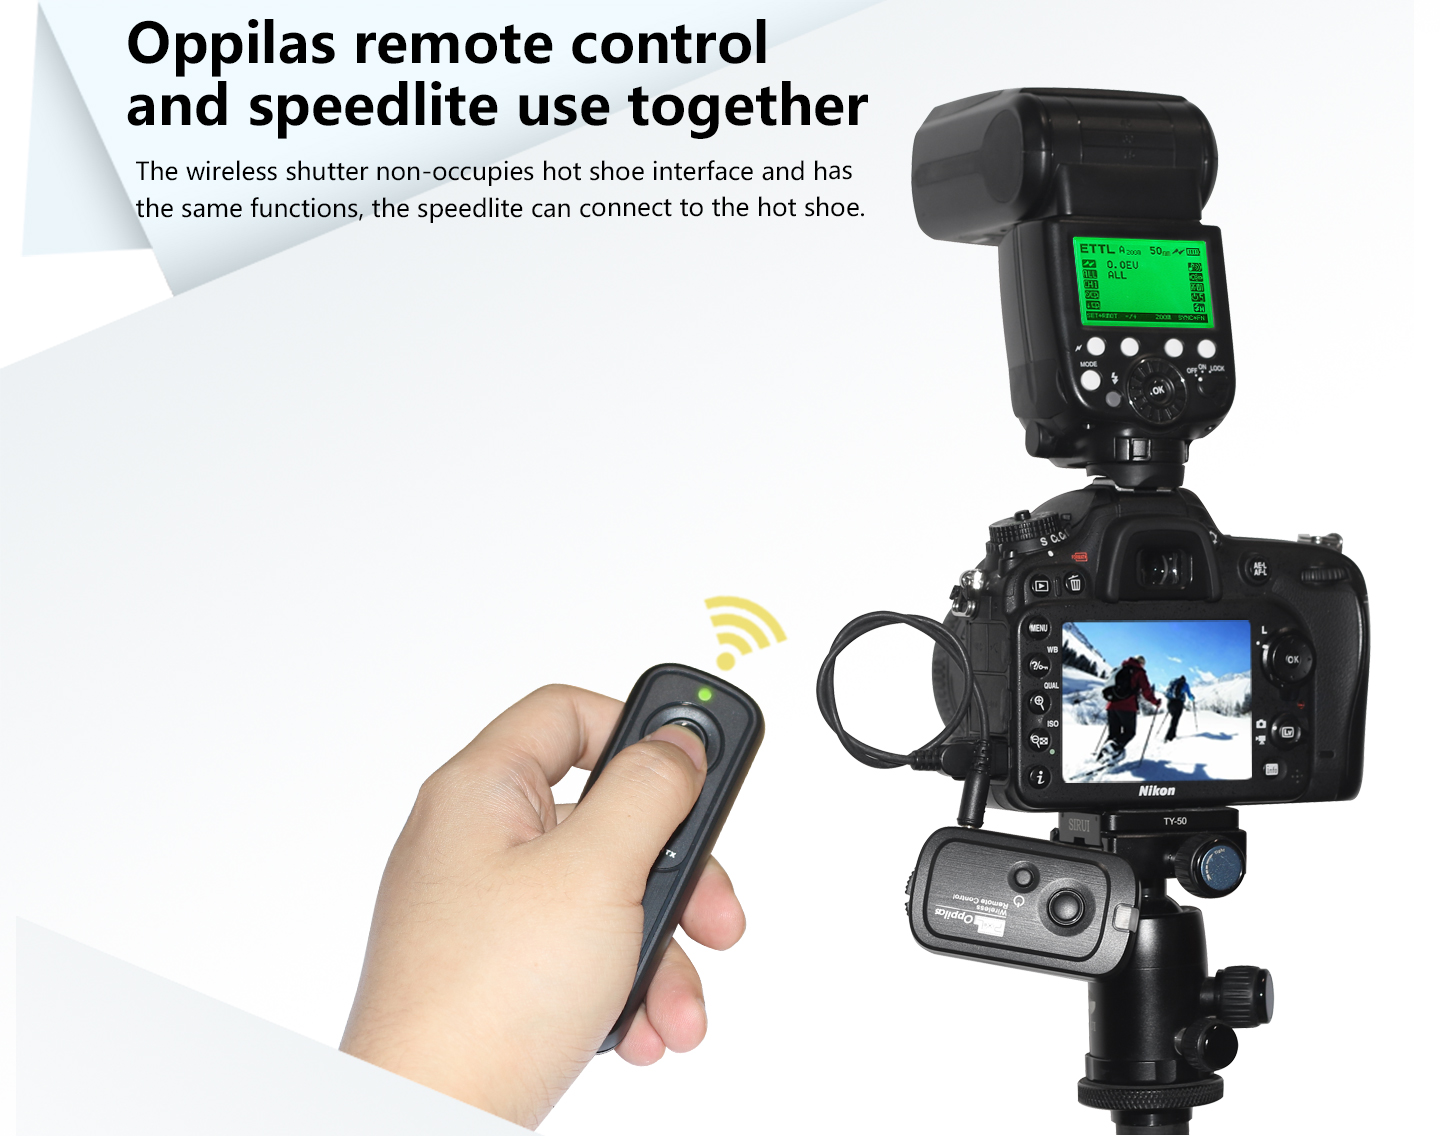 Oppilas remote control and speedlite use together